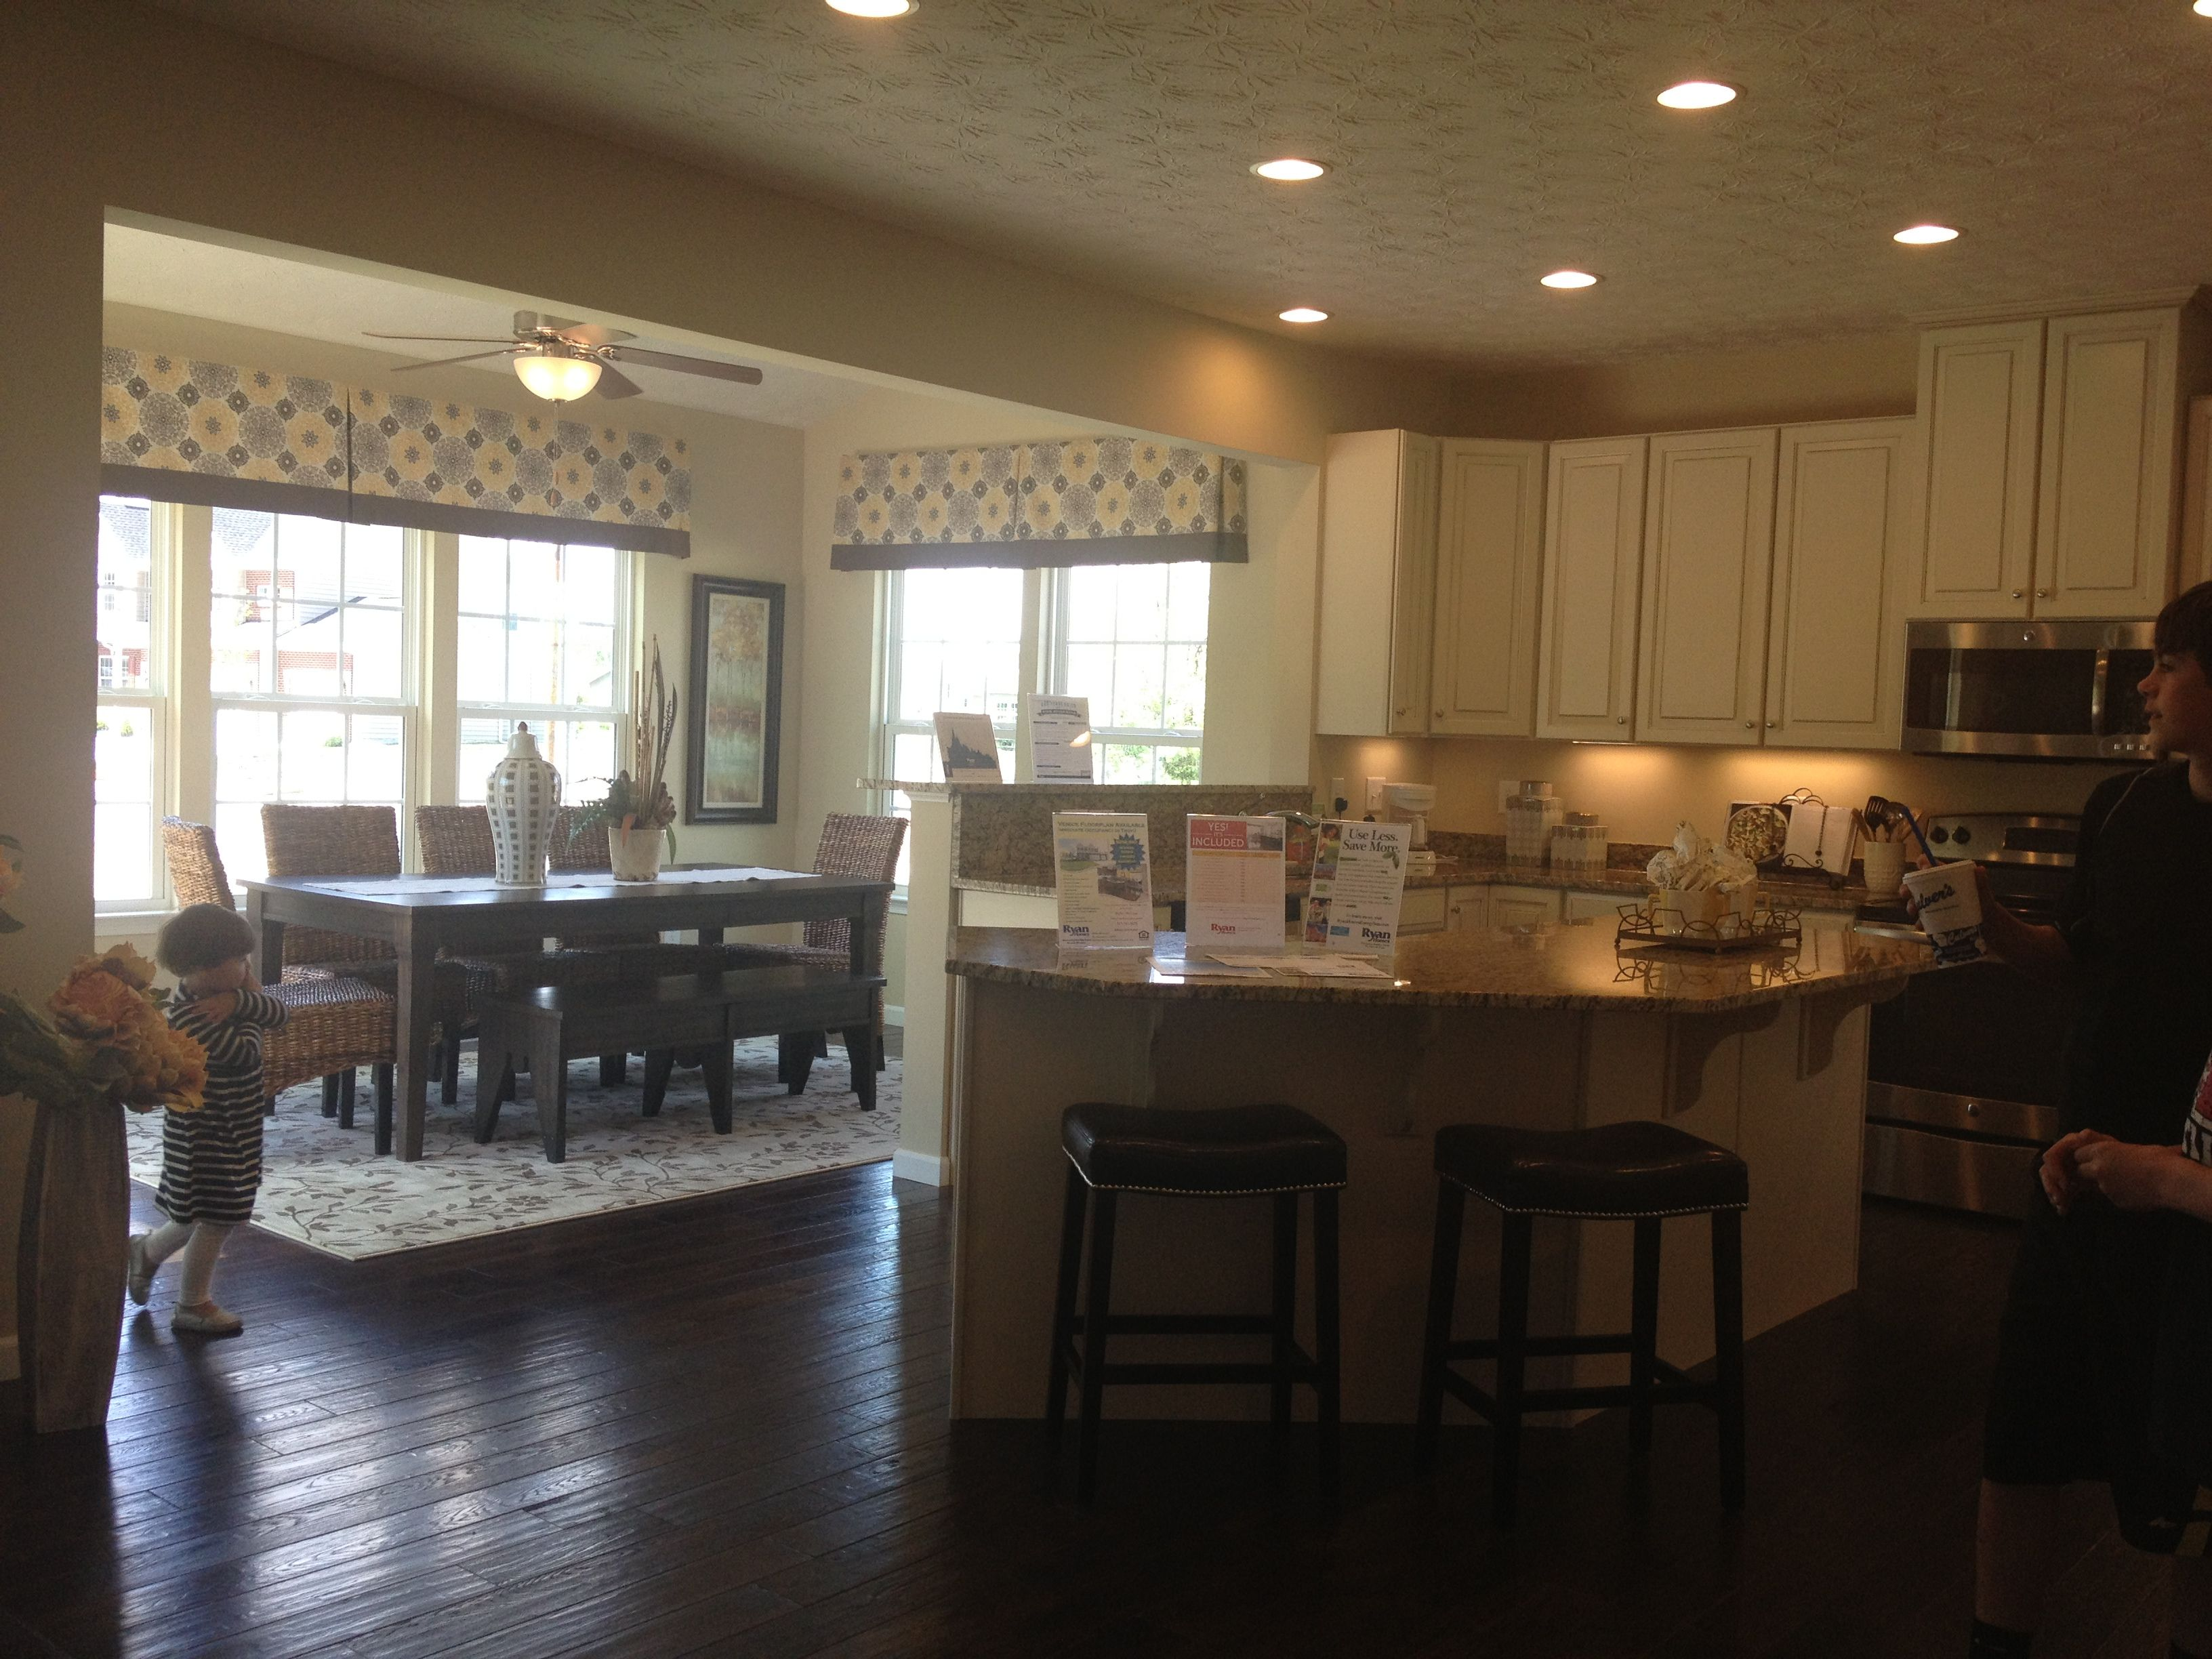 Ryan Homes Palmero Love The Kitchen Morning Room New House Ideas Pinterest Home The